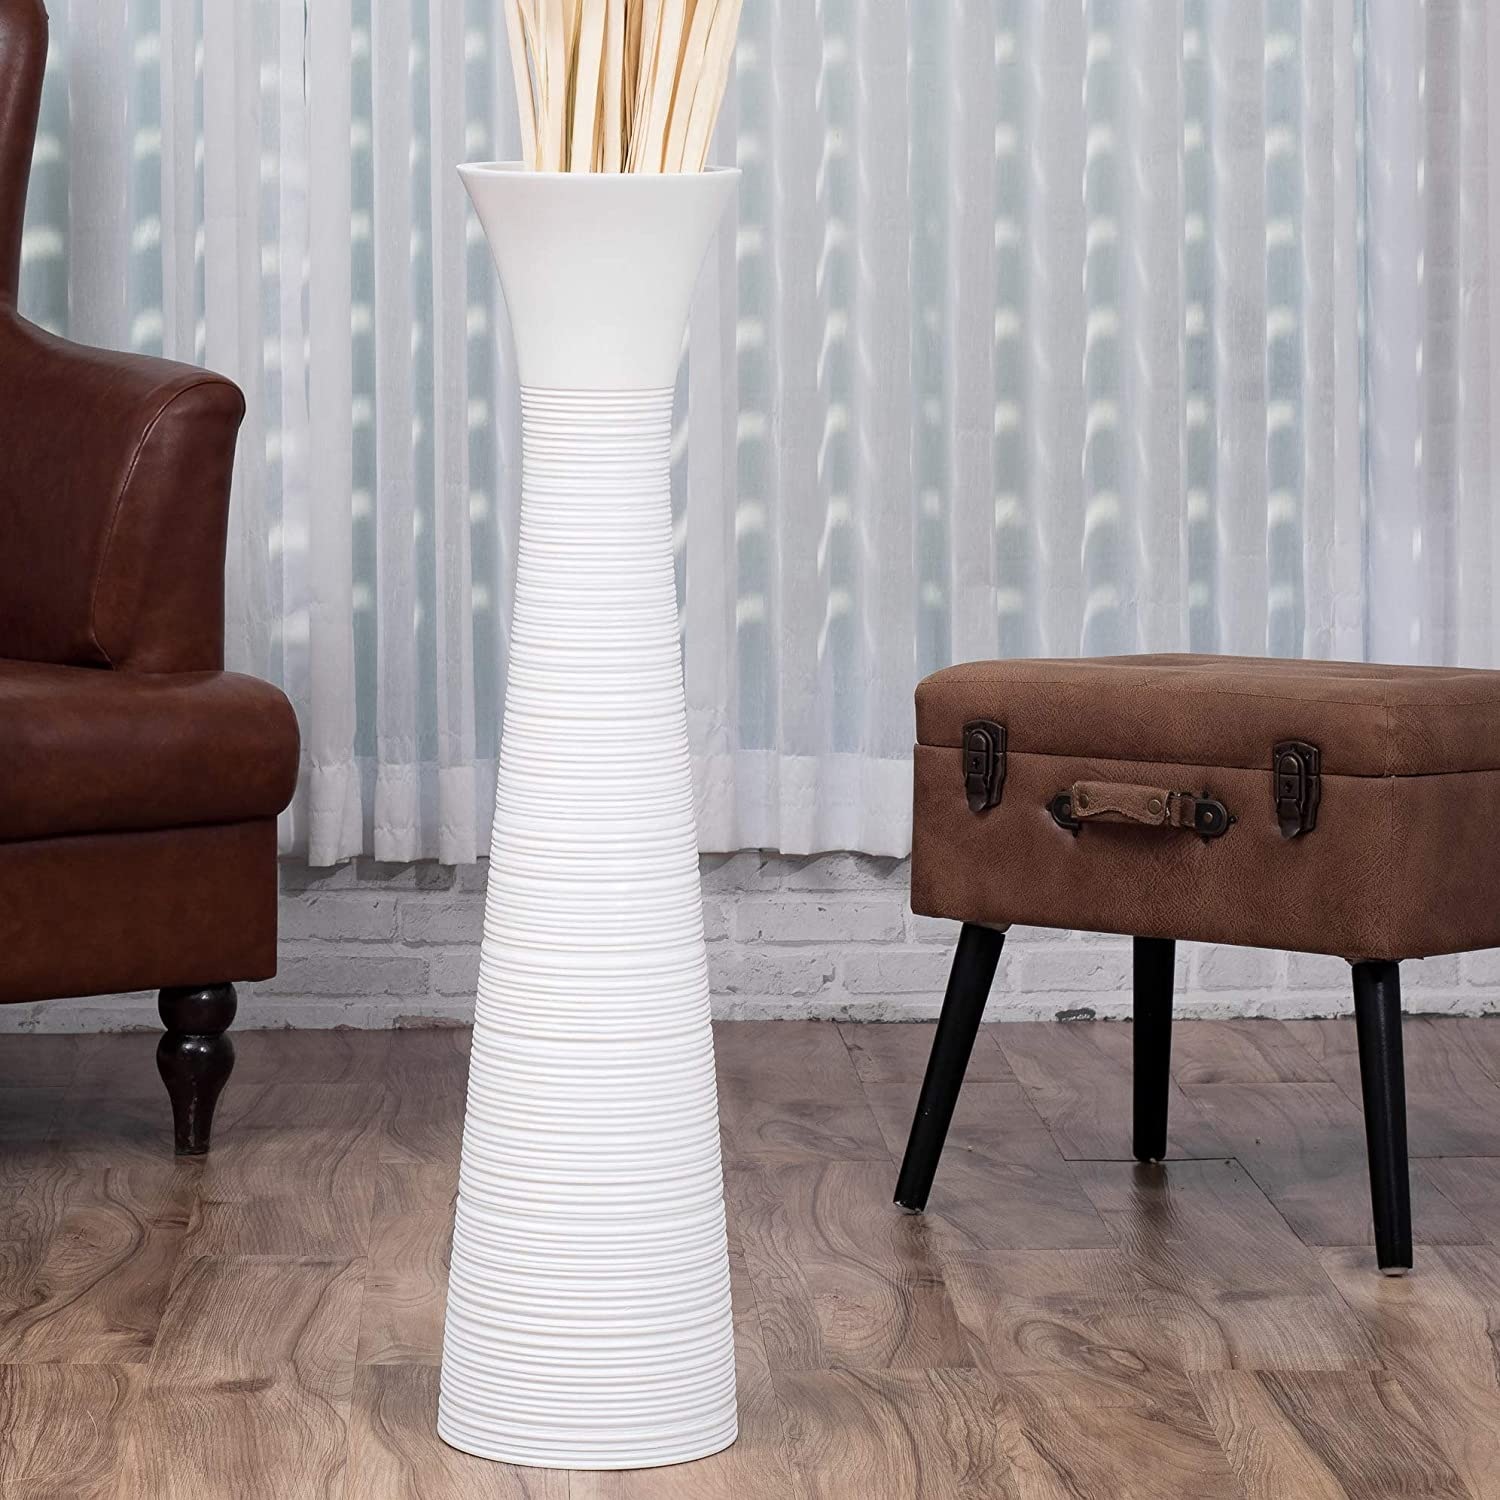 Leewadee Tall Big Floor Standing Vase for Home Decor 36 inches, Mango Wood, White